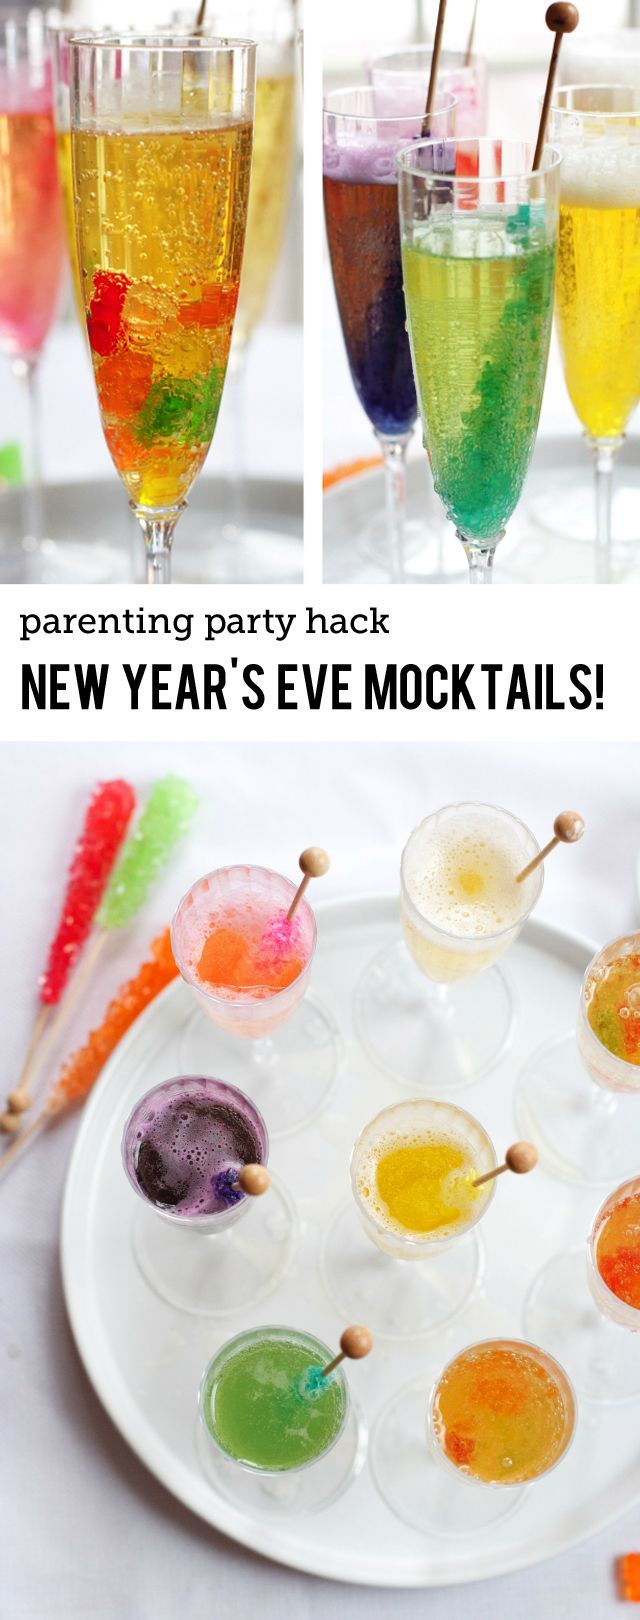 Super Simple New Year's Eve Mocktails for the Kids - Modern Parents Messy Kids